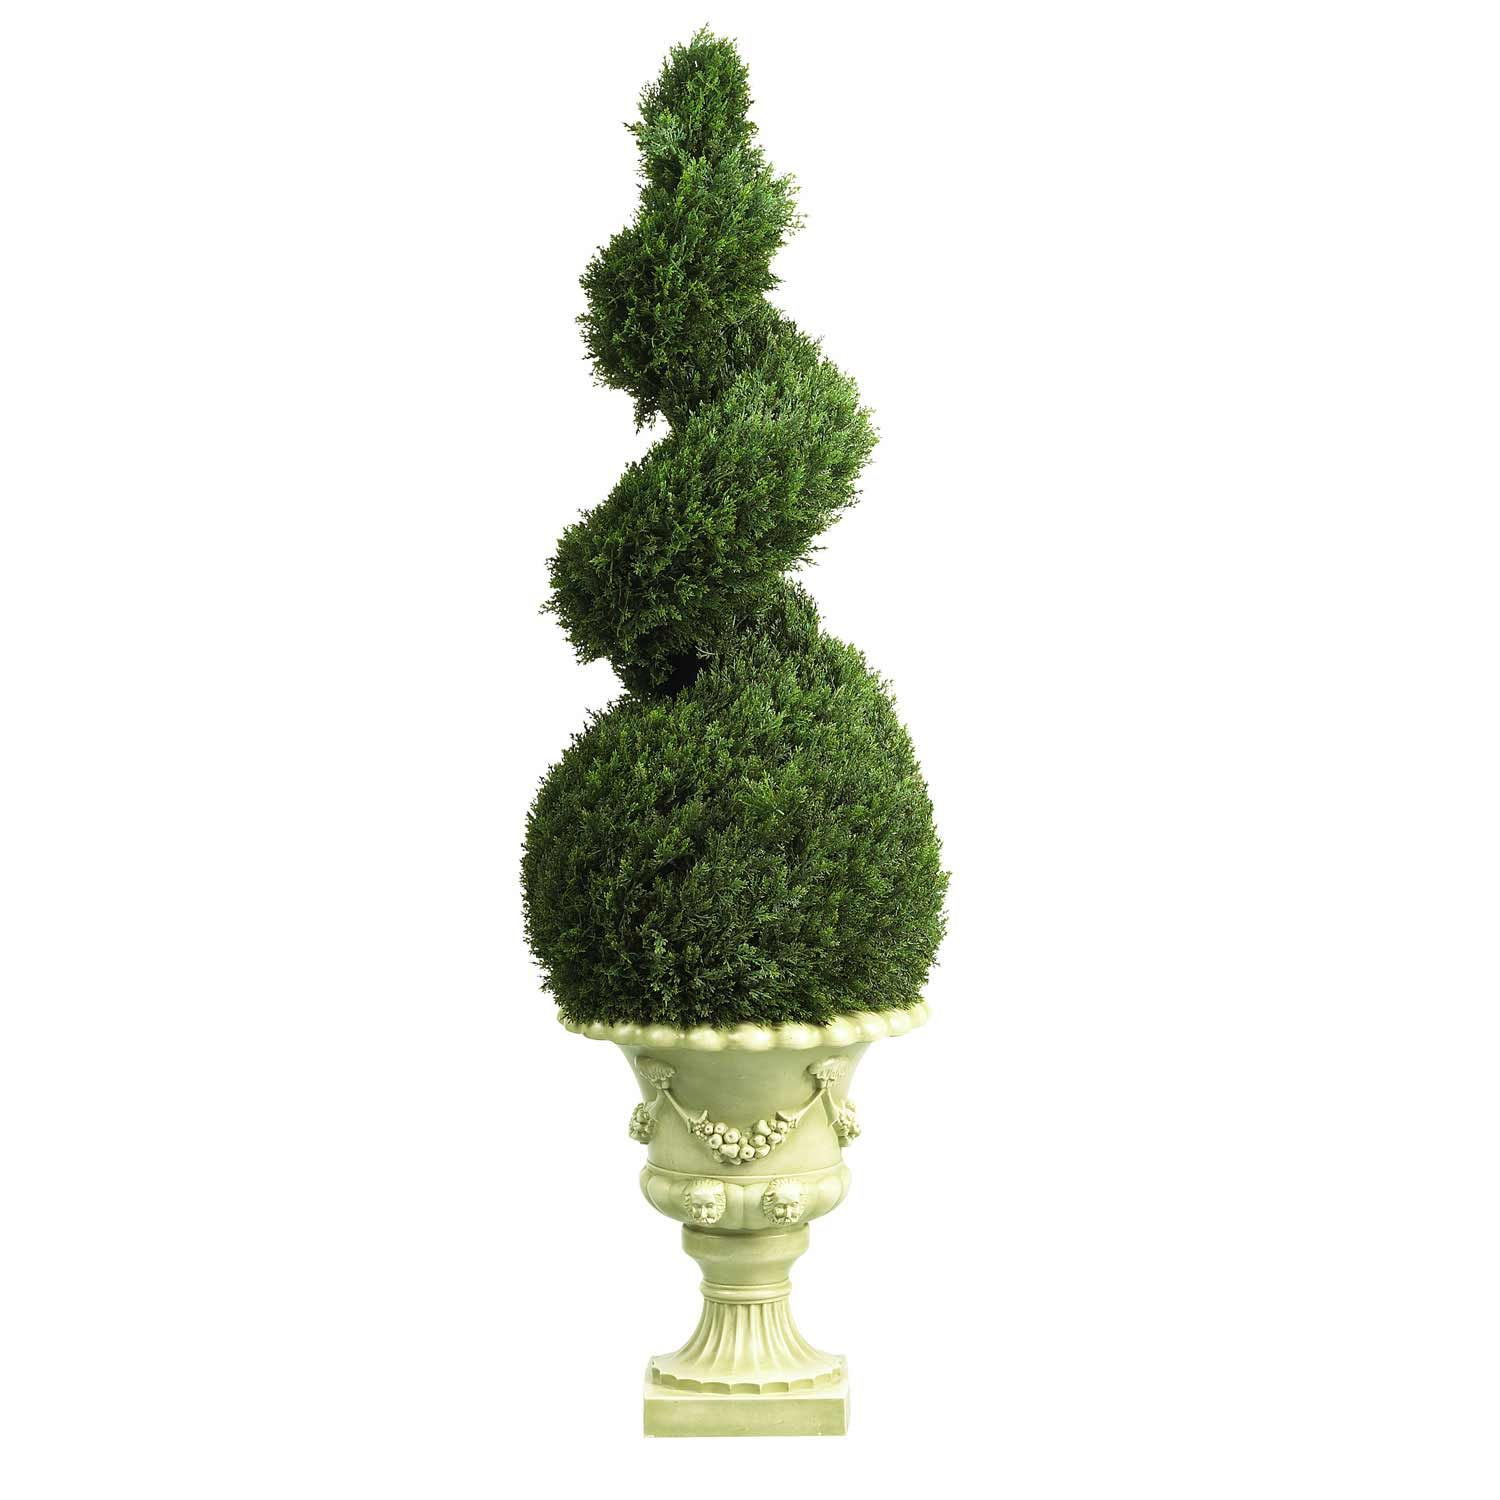 Decorative Urns For Plants Adorable 4 Foot Cedar Spiral Topiary In Decorative Urn  Urn And Topiary Design Decoration